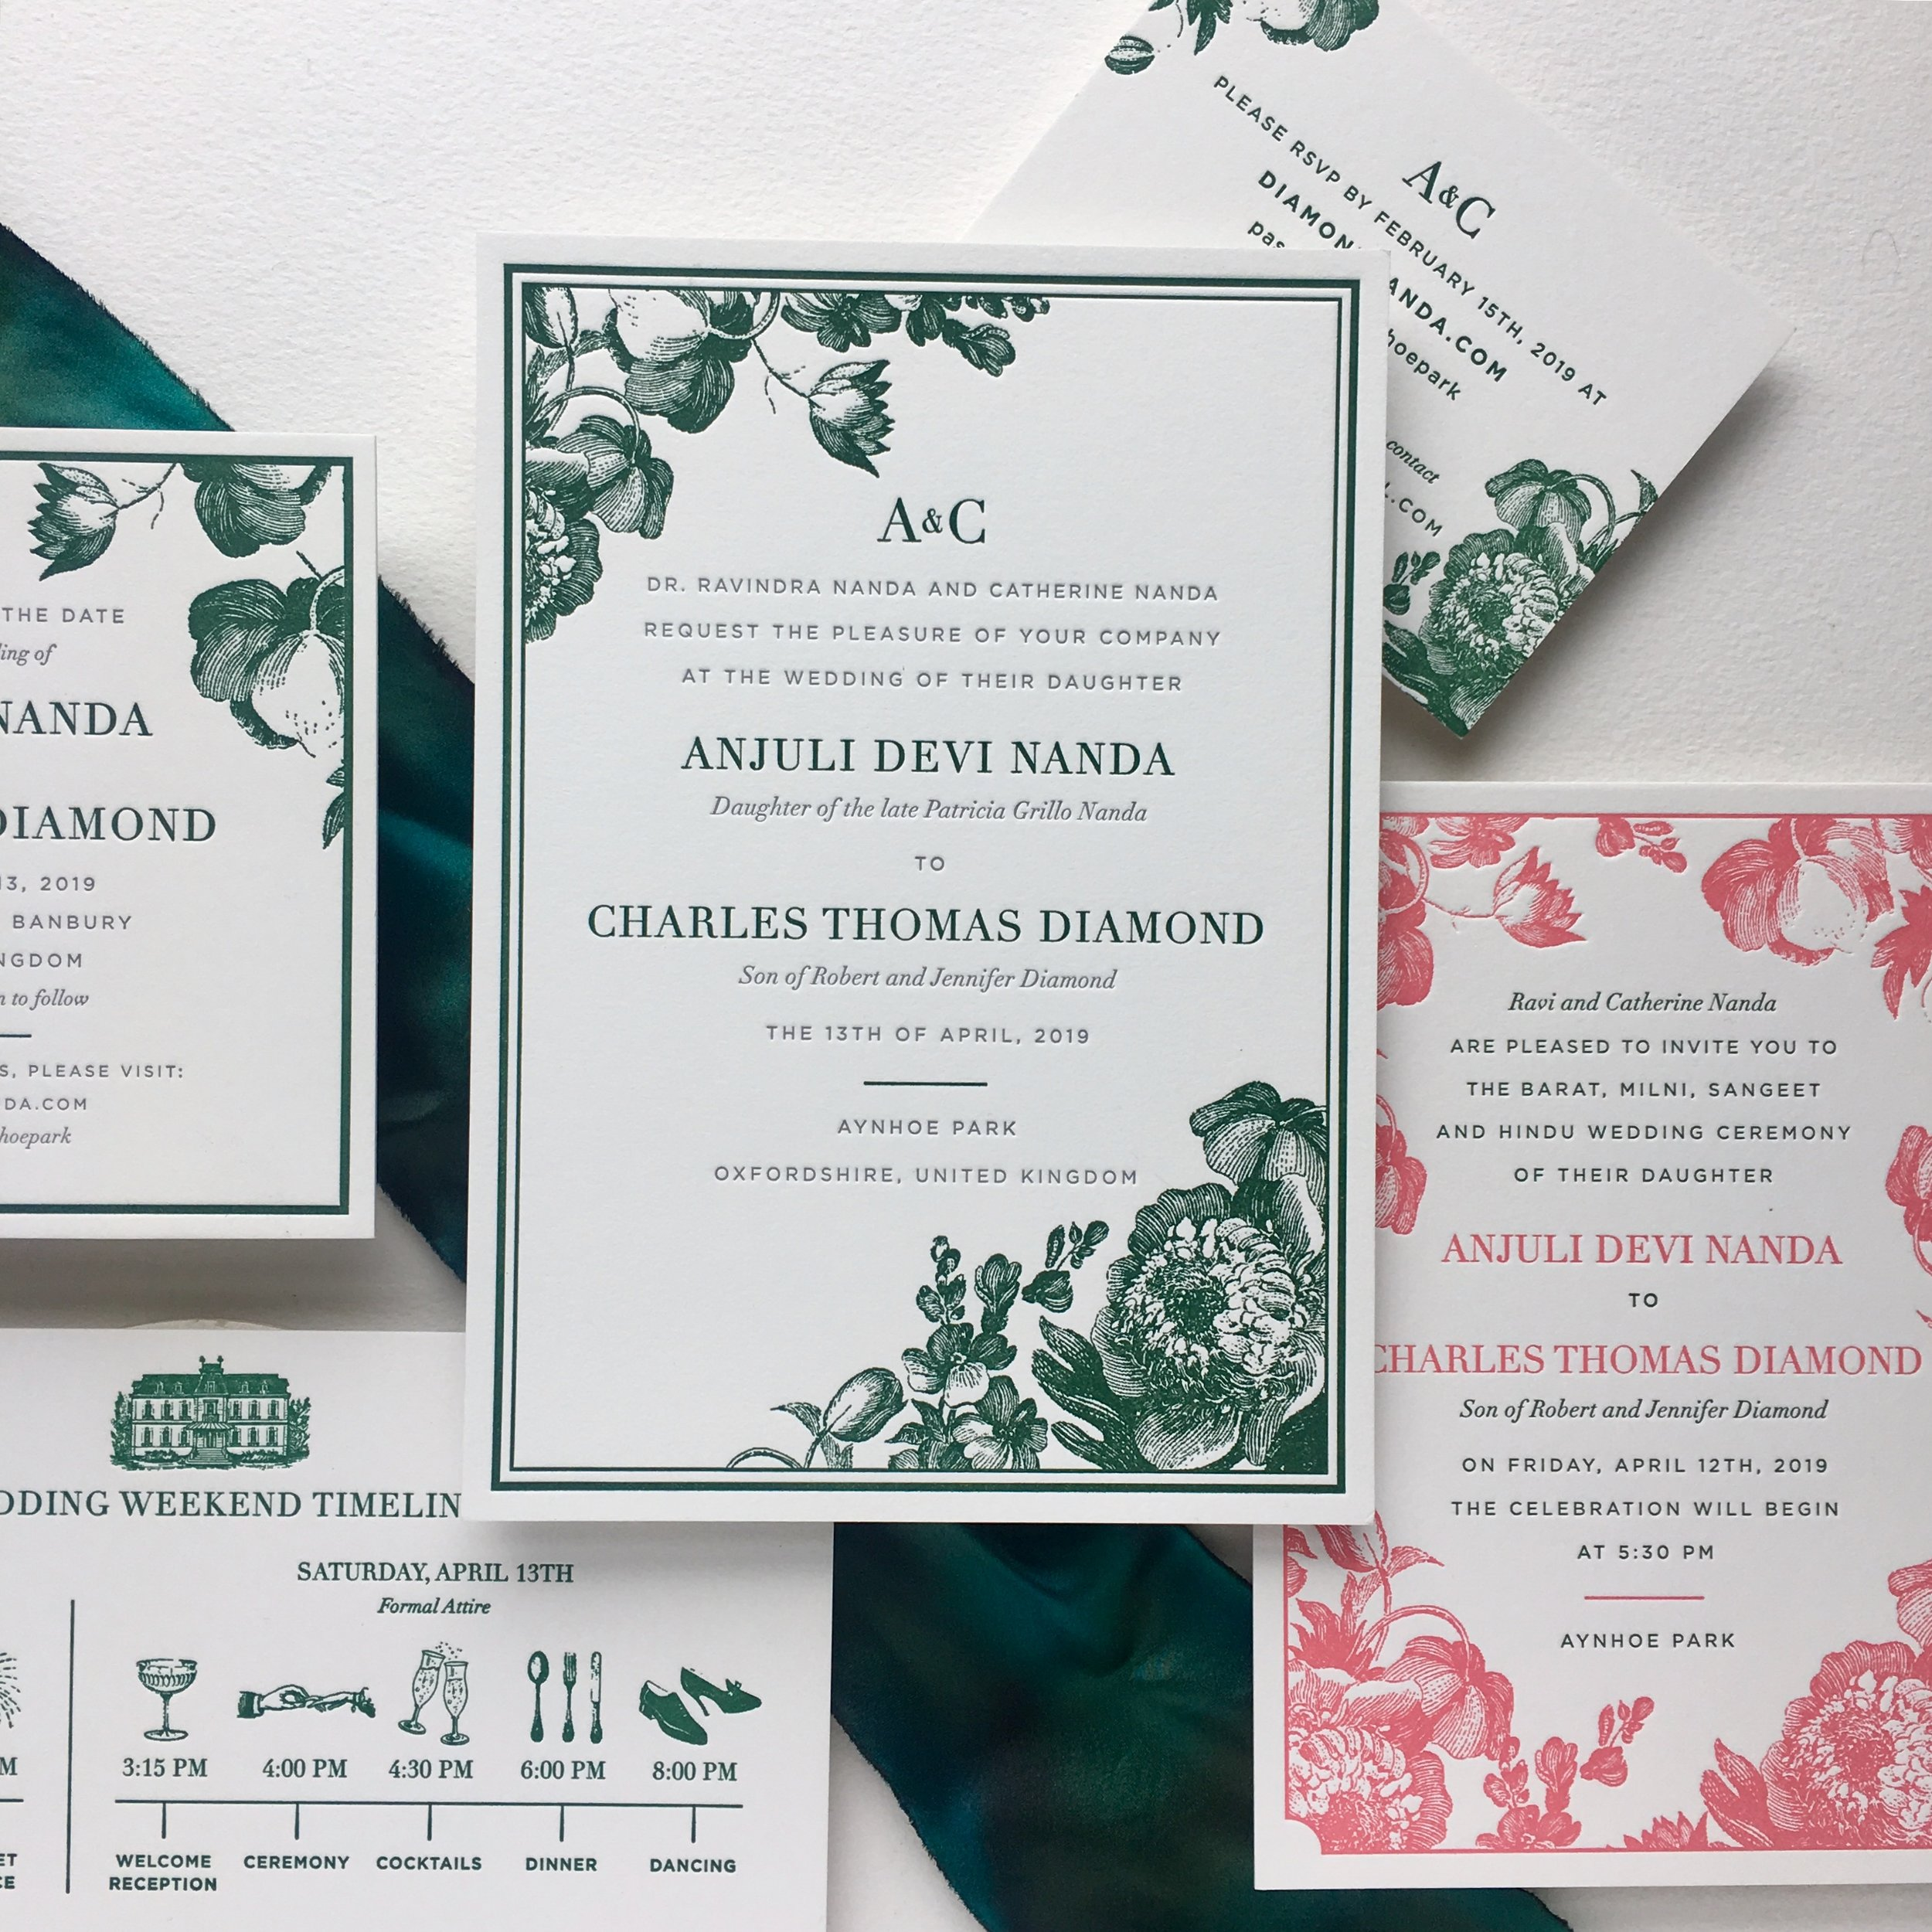 Wedding on Vogue.com - We worked with a great couple on the invitations for their Indian & English wedding in the Cotswolds this year. The final design was gorgeous, with jewel toned colors and beautiful floral elements. They were recently featured on Vogue.com and the photos from their nuptials are absolutely stunning! Its always a treat to see pictures from a wedding, after collaborating with a couple on their invitations.